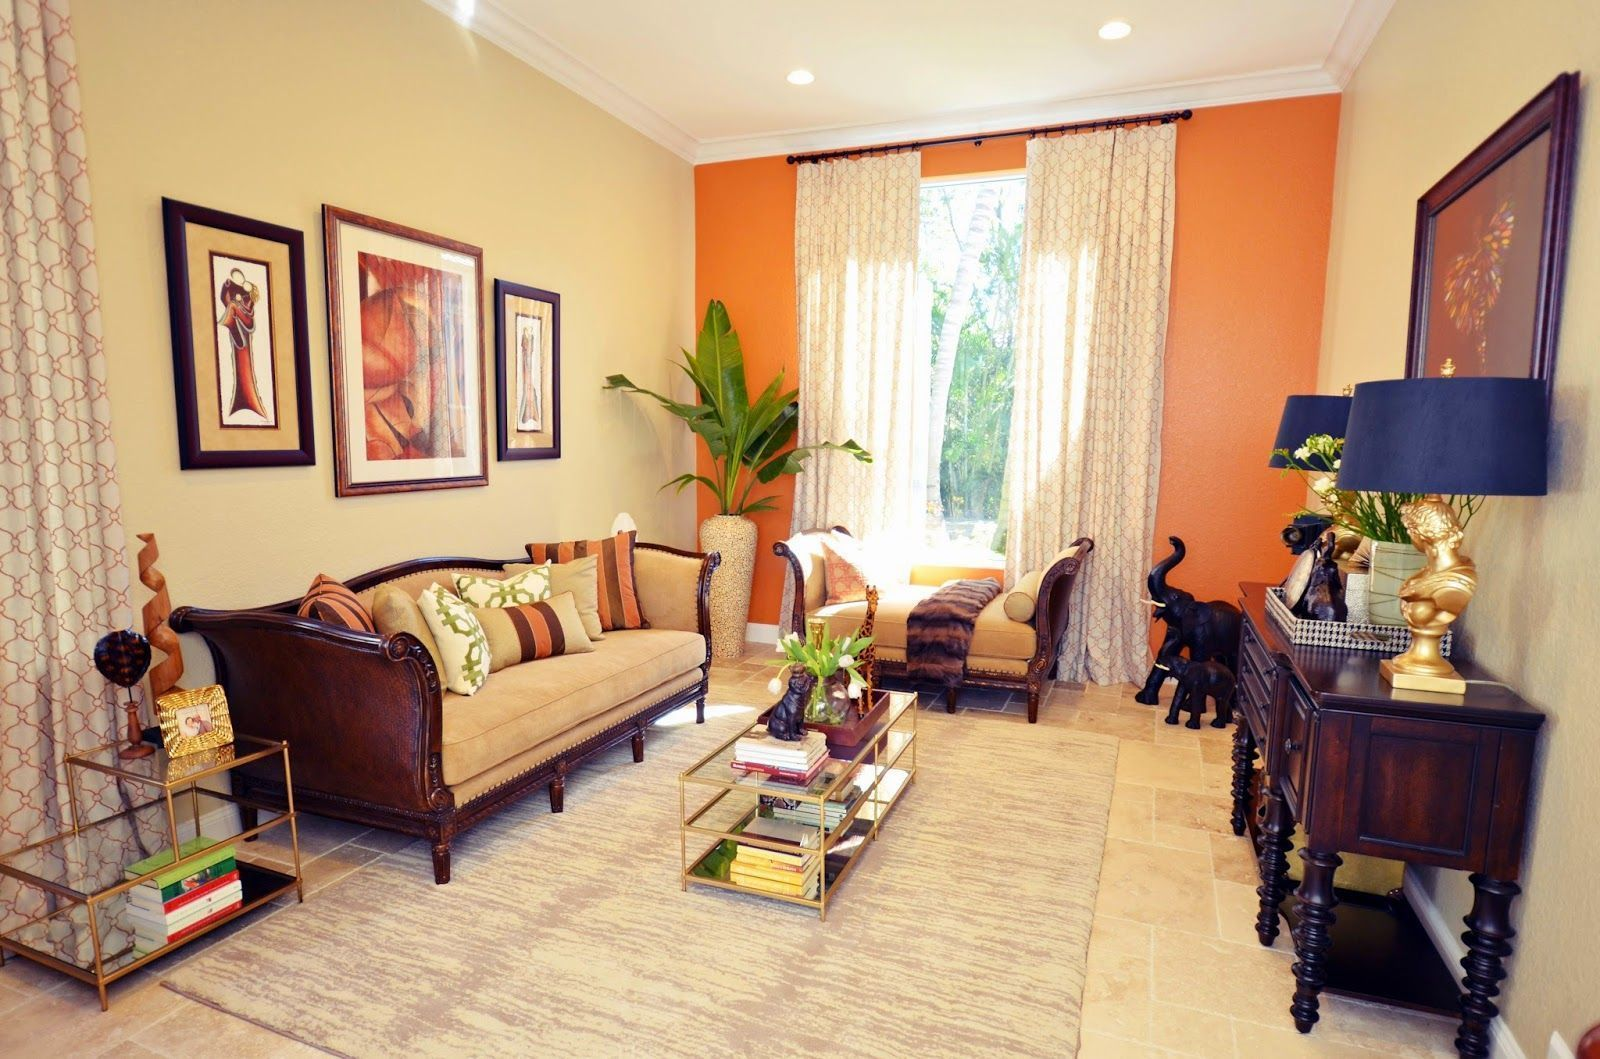 Neutral and orange living room #indischeswohnzimmer Neutral and orange living room #indischeswohnzimmer Neutral and orange living room #indischeswohnzimmer Neutral and orange living room #indischeswohnzimmer